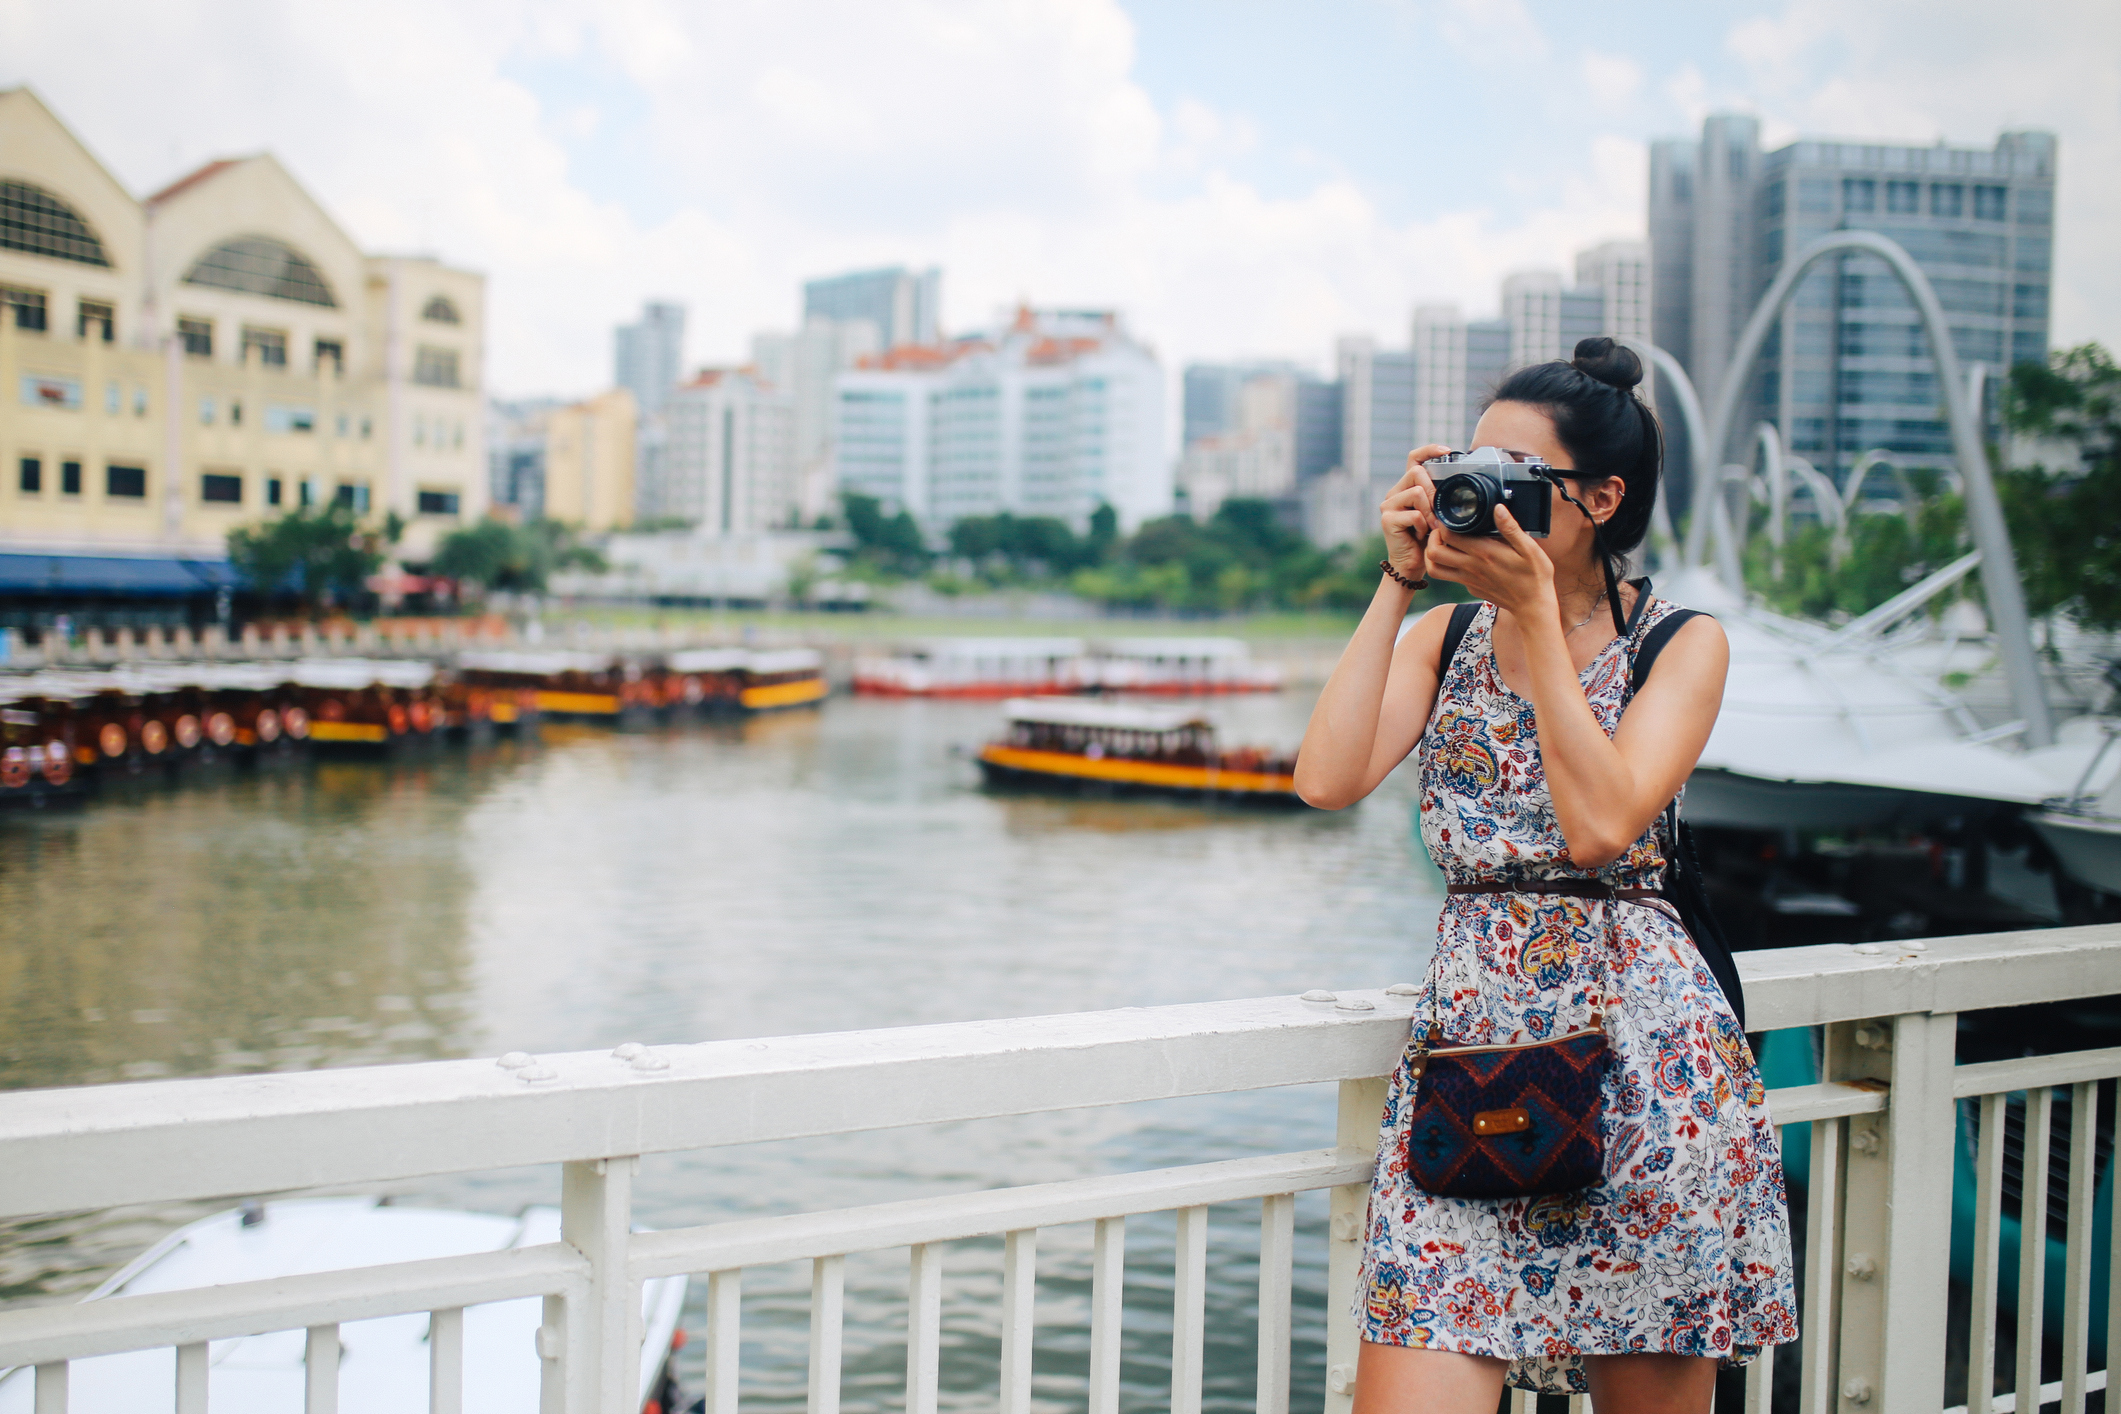 Image of a young fashionable brunette woman. She is relaxing after a day of long walks, wearing a casual but fashionable dress, enjoying the beautiful day on the busy streets of Singapore, taking images with her retro looking mirrorless camera or a true 35mm analog SLR.